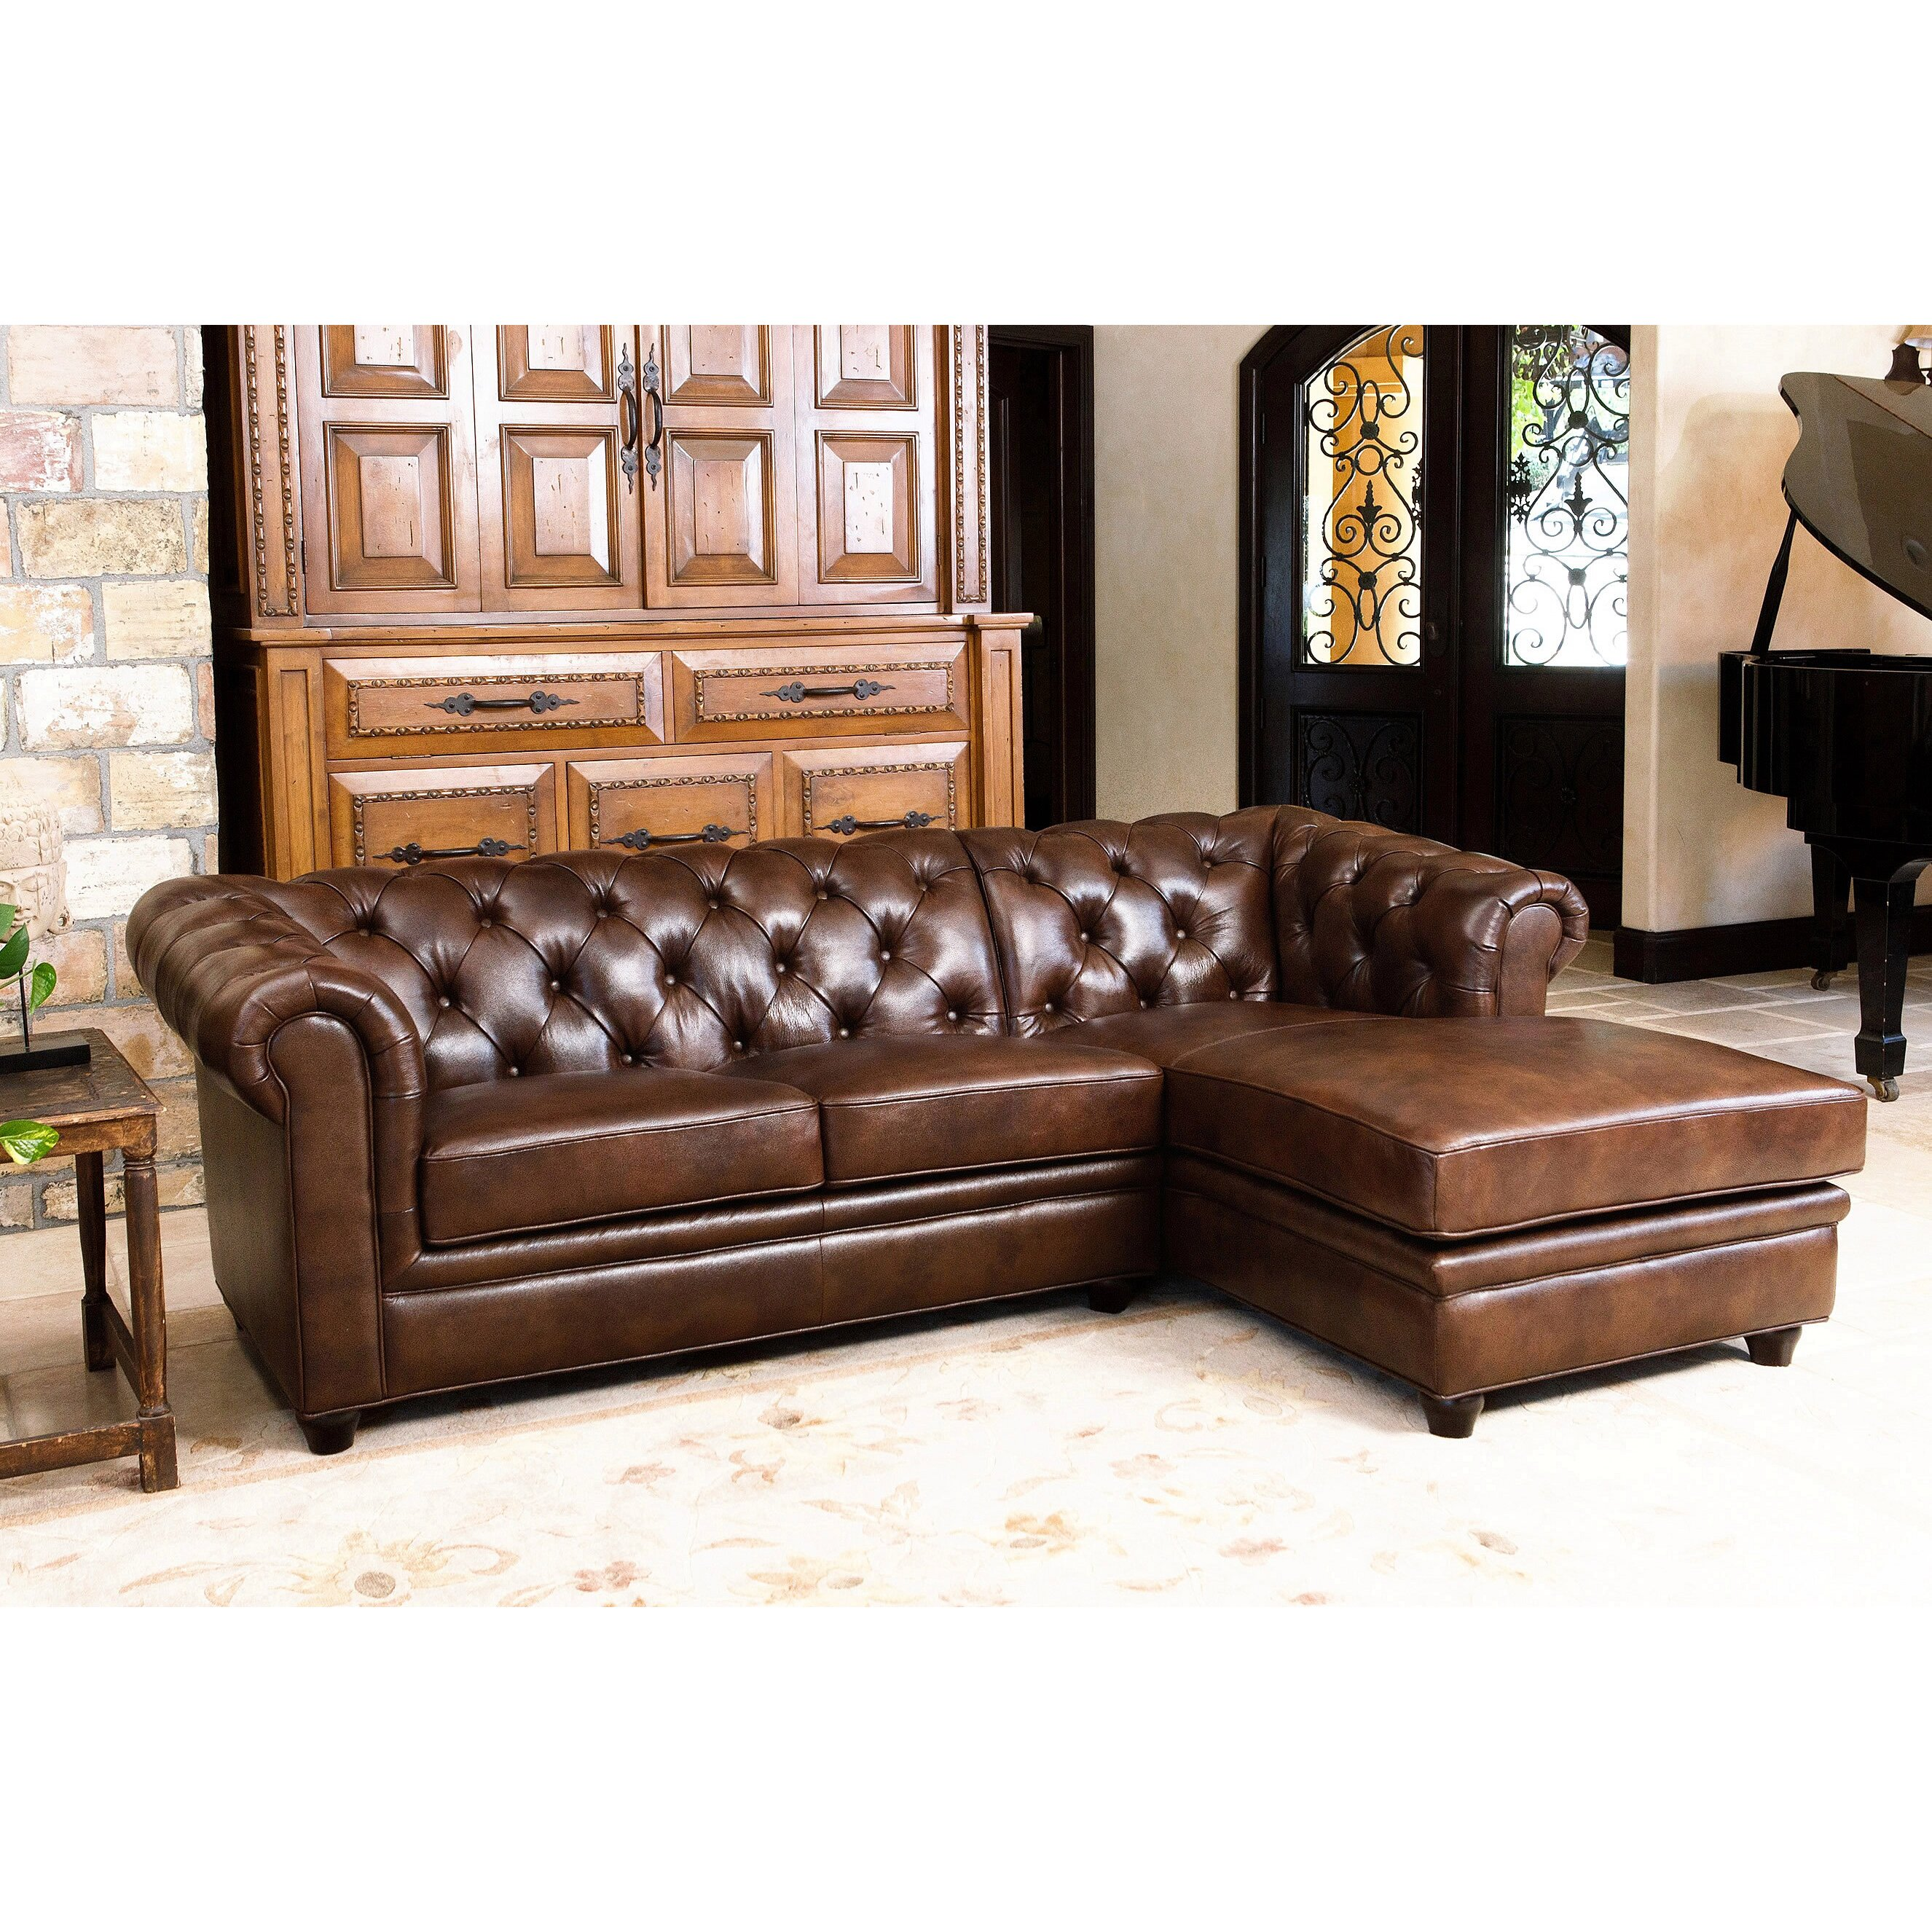 darby home co lapointe leather chaise sectional reviews wayfair. Black Bedroom Furniture Sets. Home Design Ideas